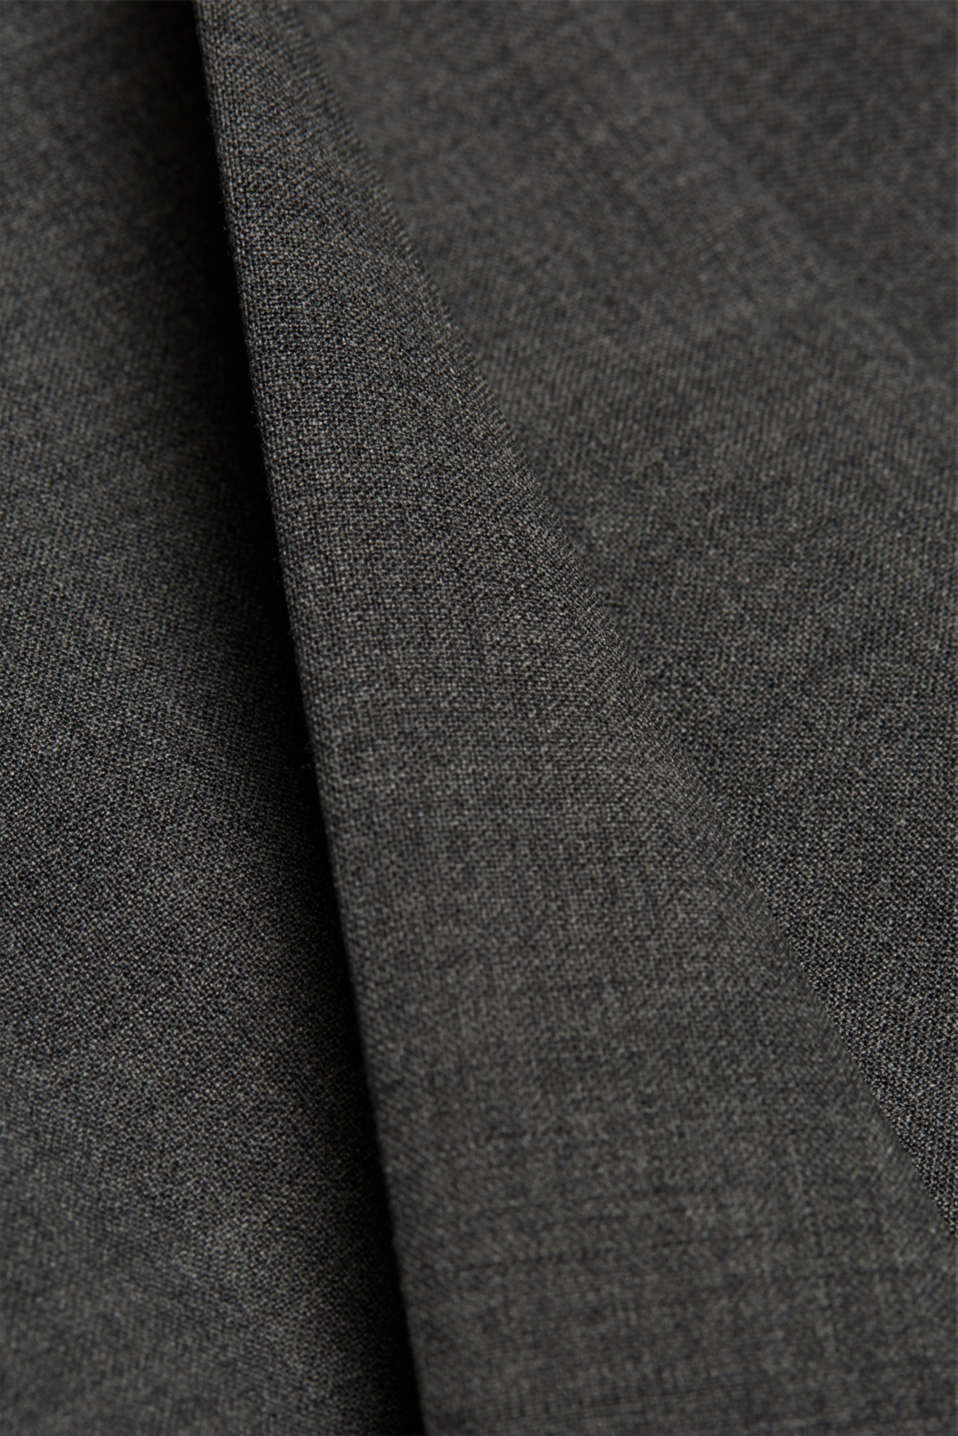 ACTIVE SUIT trousers made of blended wool, DARK GREY 5, detail image number 4